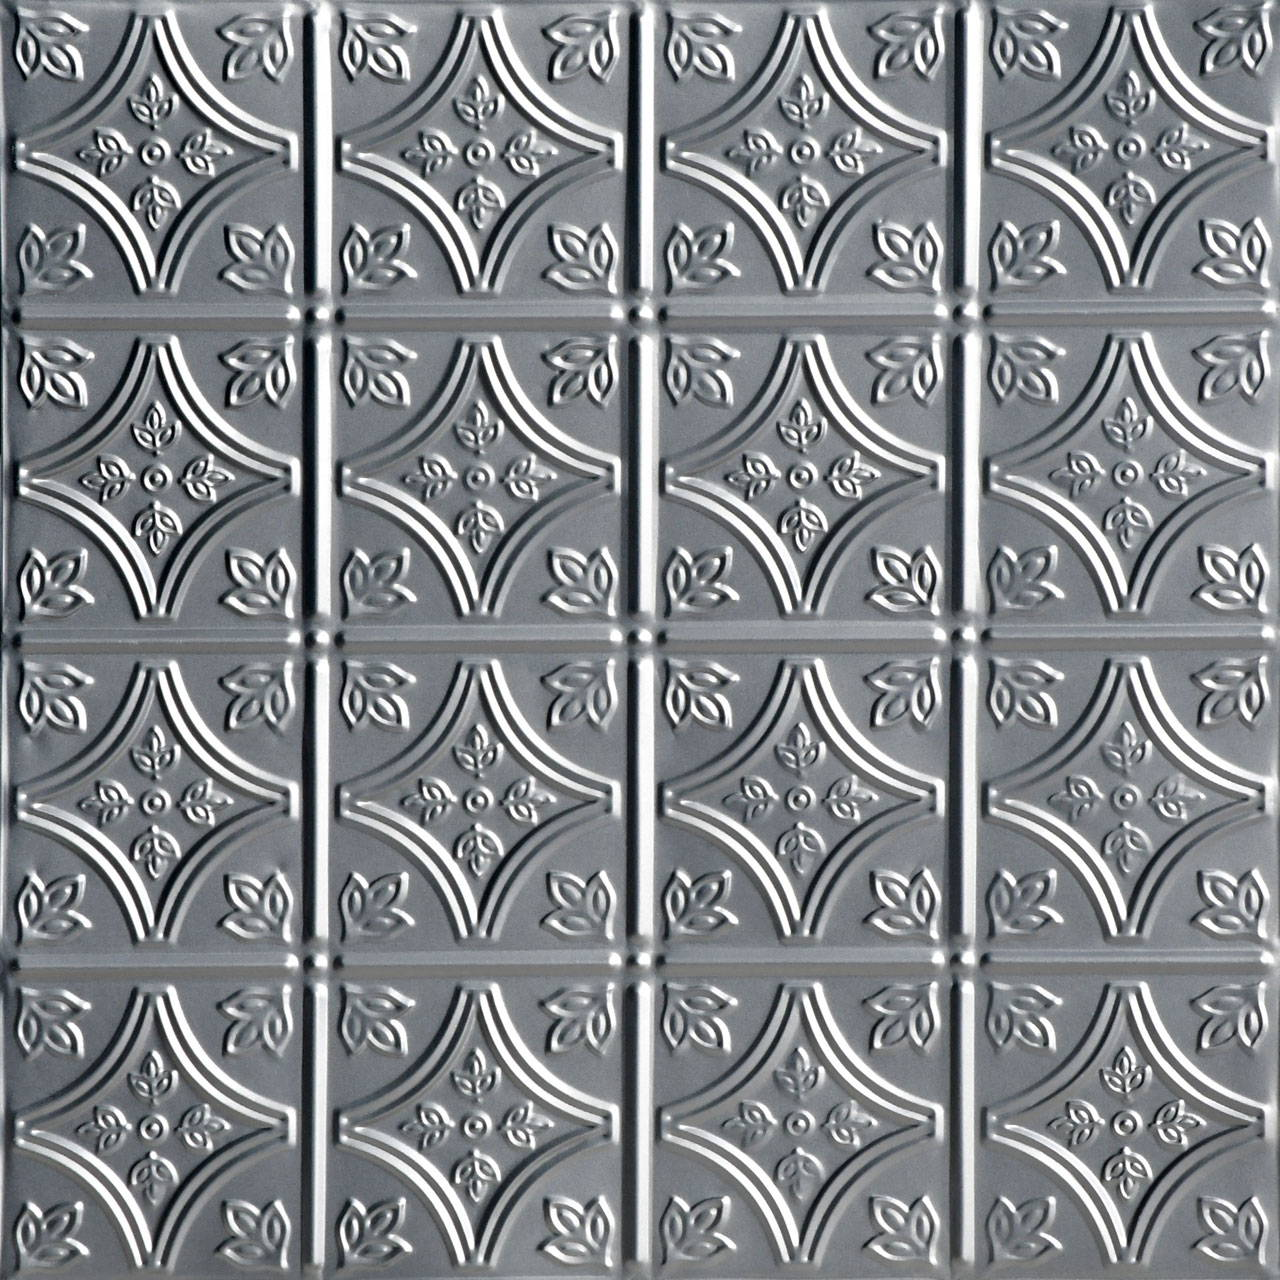 Tiny Tiptoe 2 ft x 2 ft Shanko - Wall and Ceiling Patterns - #209 - (Pack of 12) - Lacquered Steel